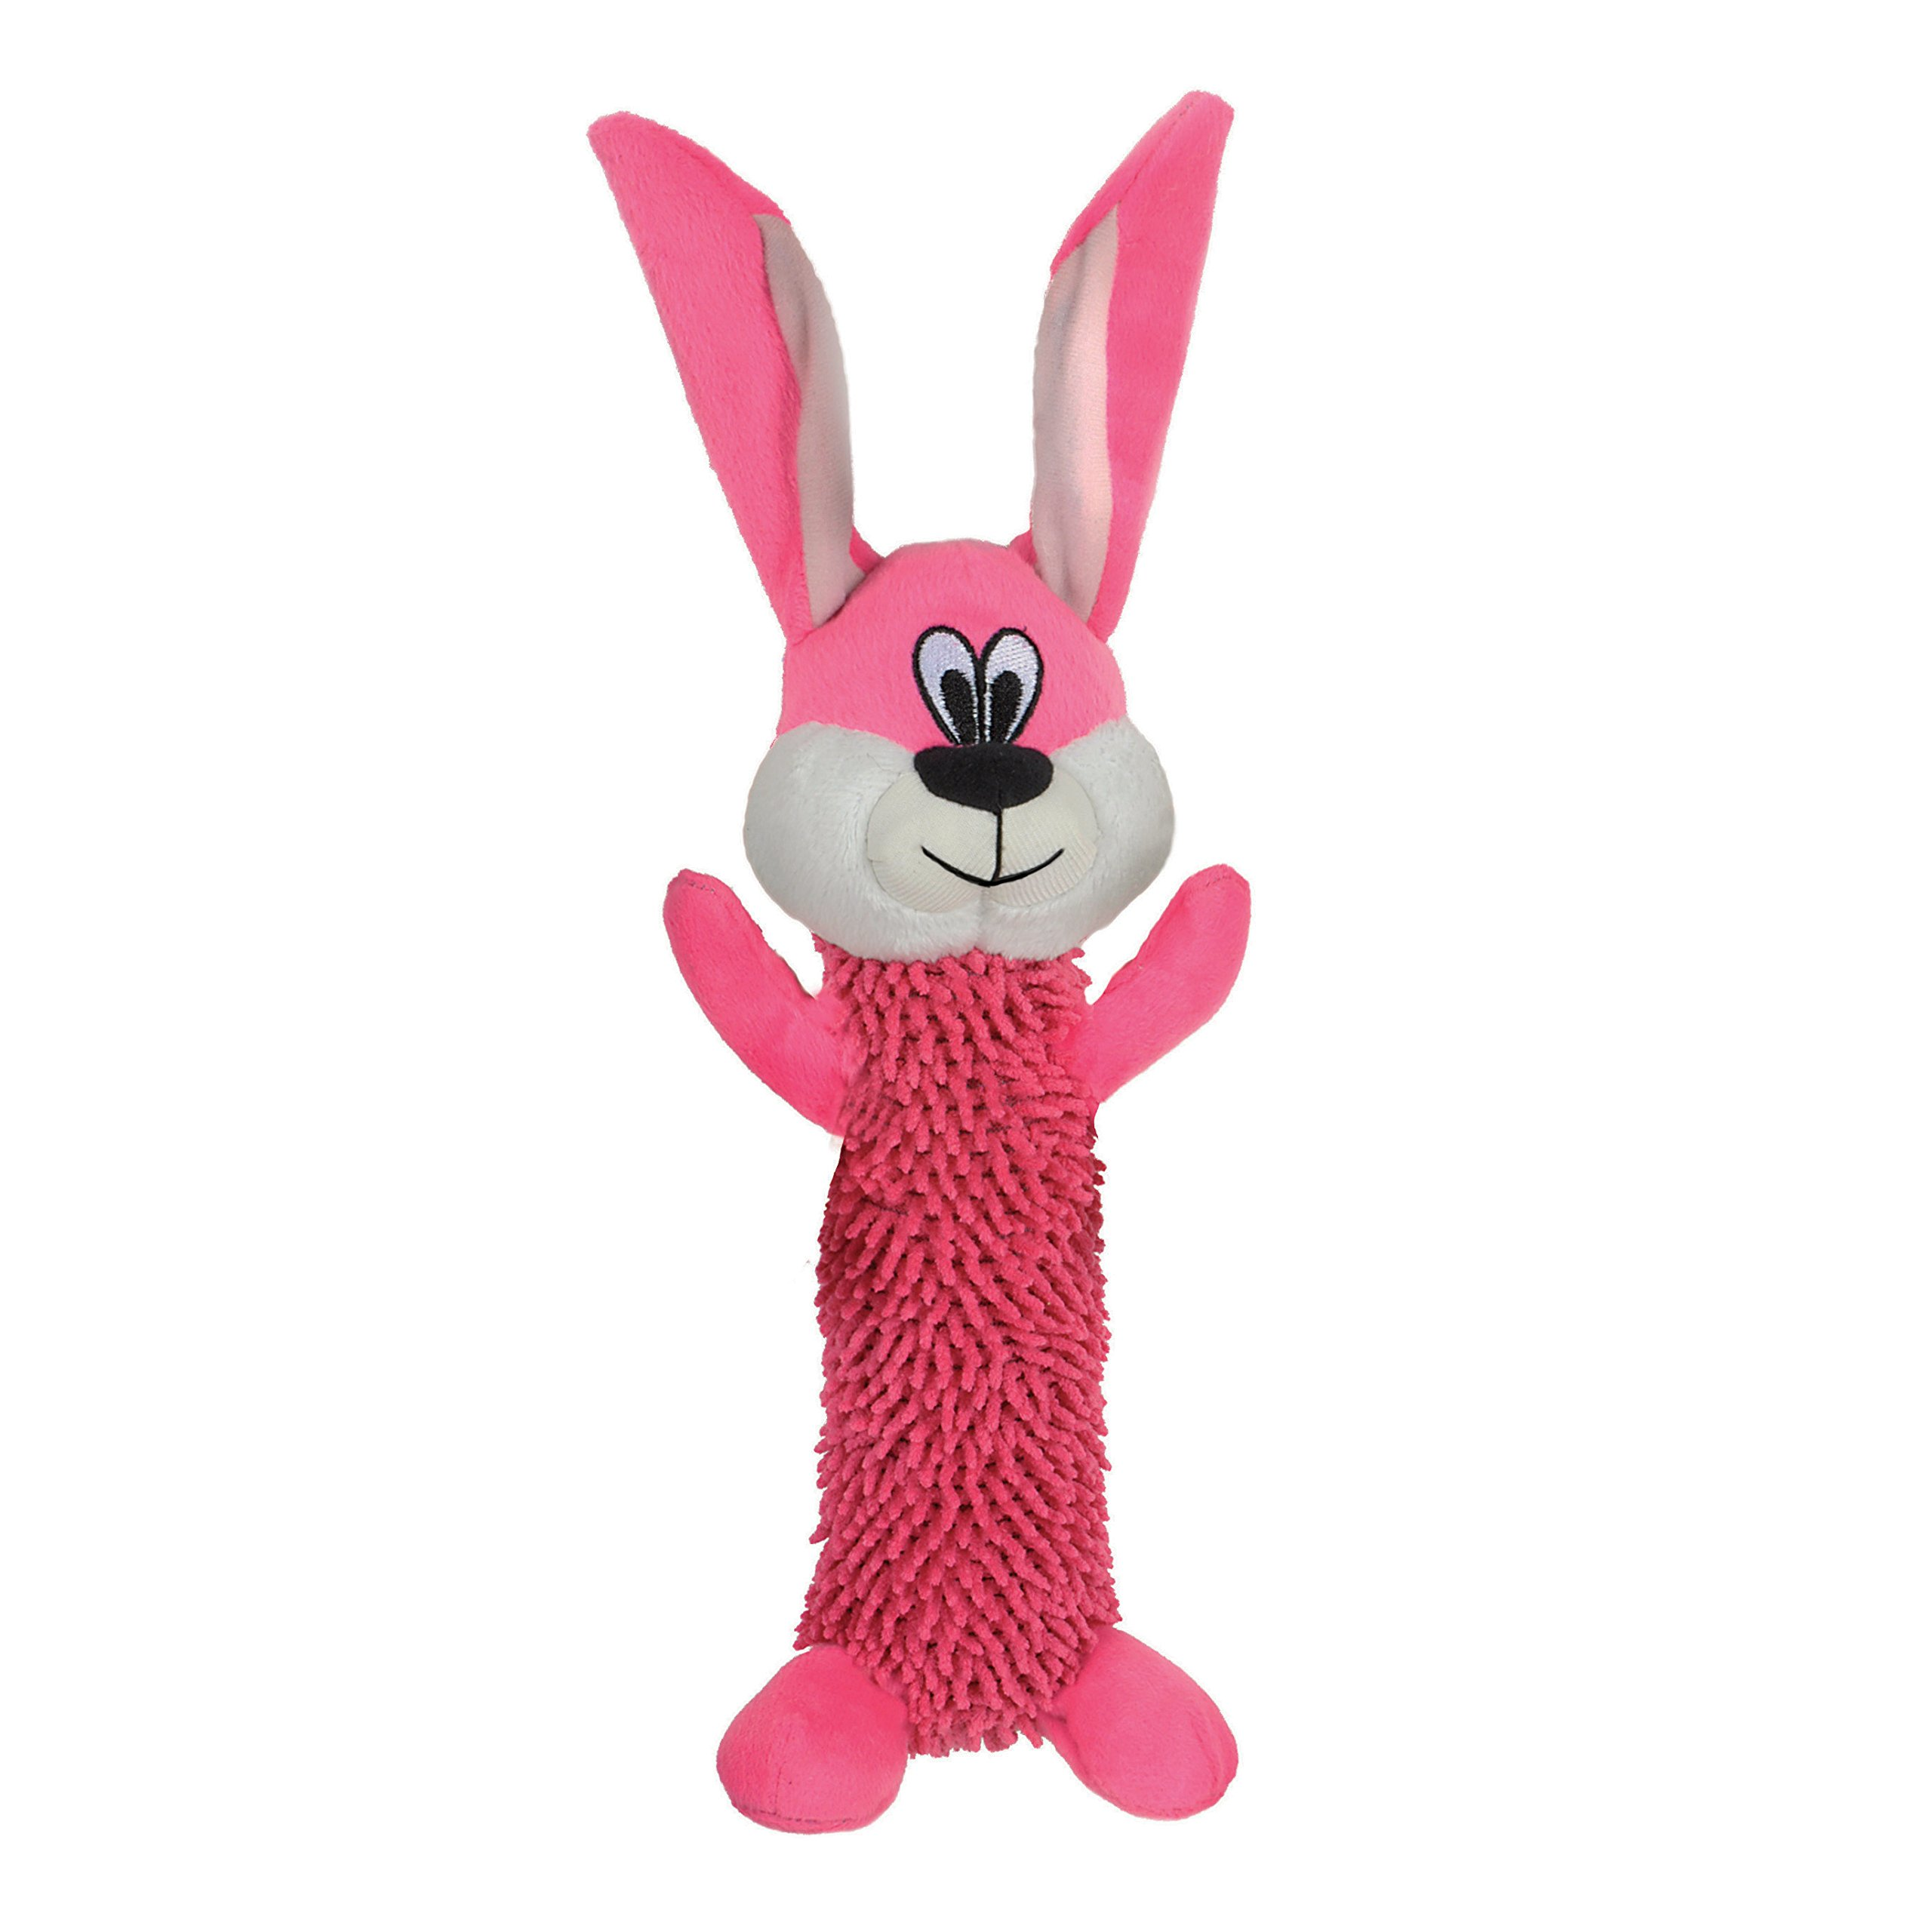 Smart Pet Love - Tender Tuffs - Shaggy Pink Rabbit - Tough Dog Toy - Play Fetch or Tug-of-war - Proprietary TearBlok Technology - Puncture Proof Squeaker